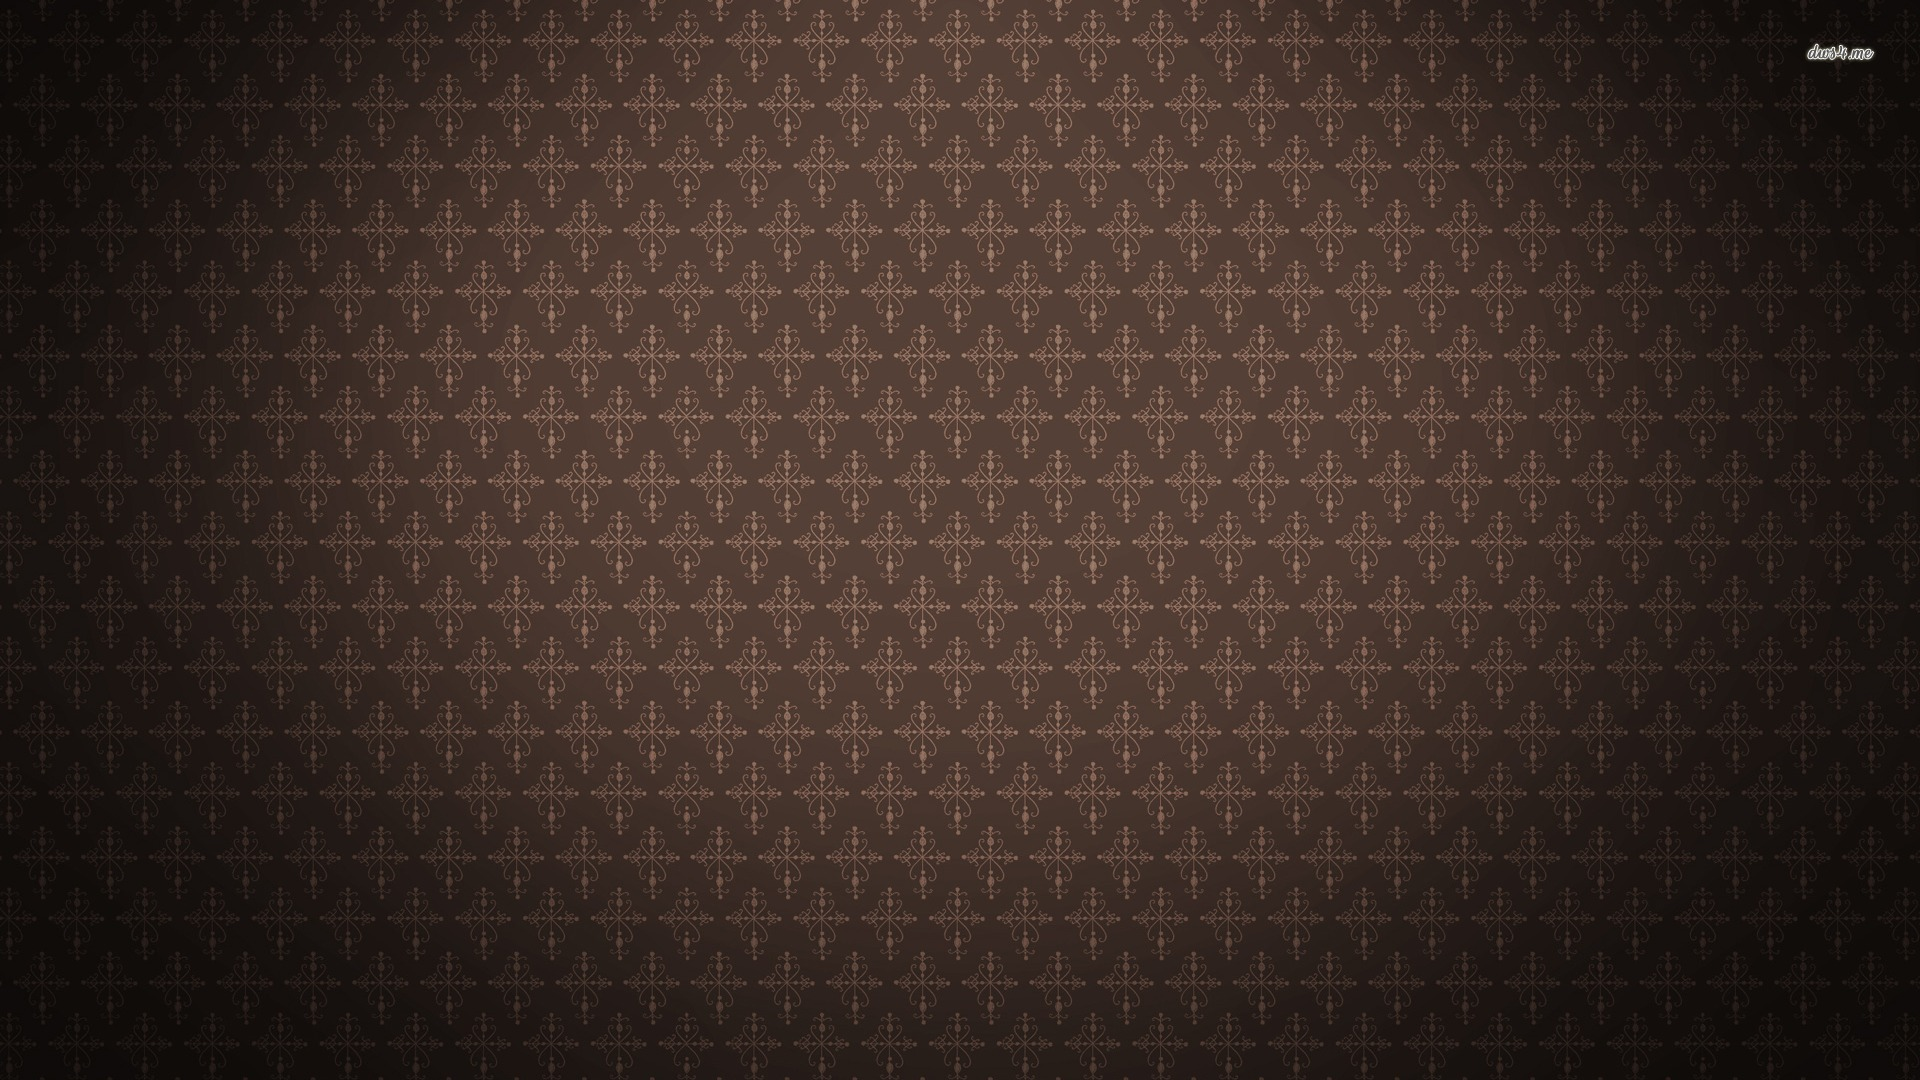 Textures Wallpapers, Photos And Desktop Backgrounds Up To